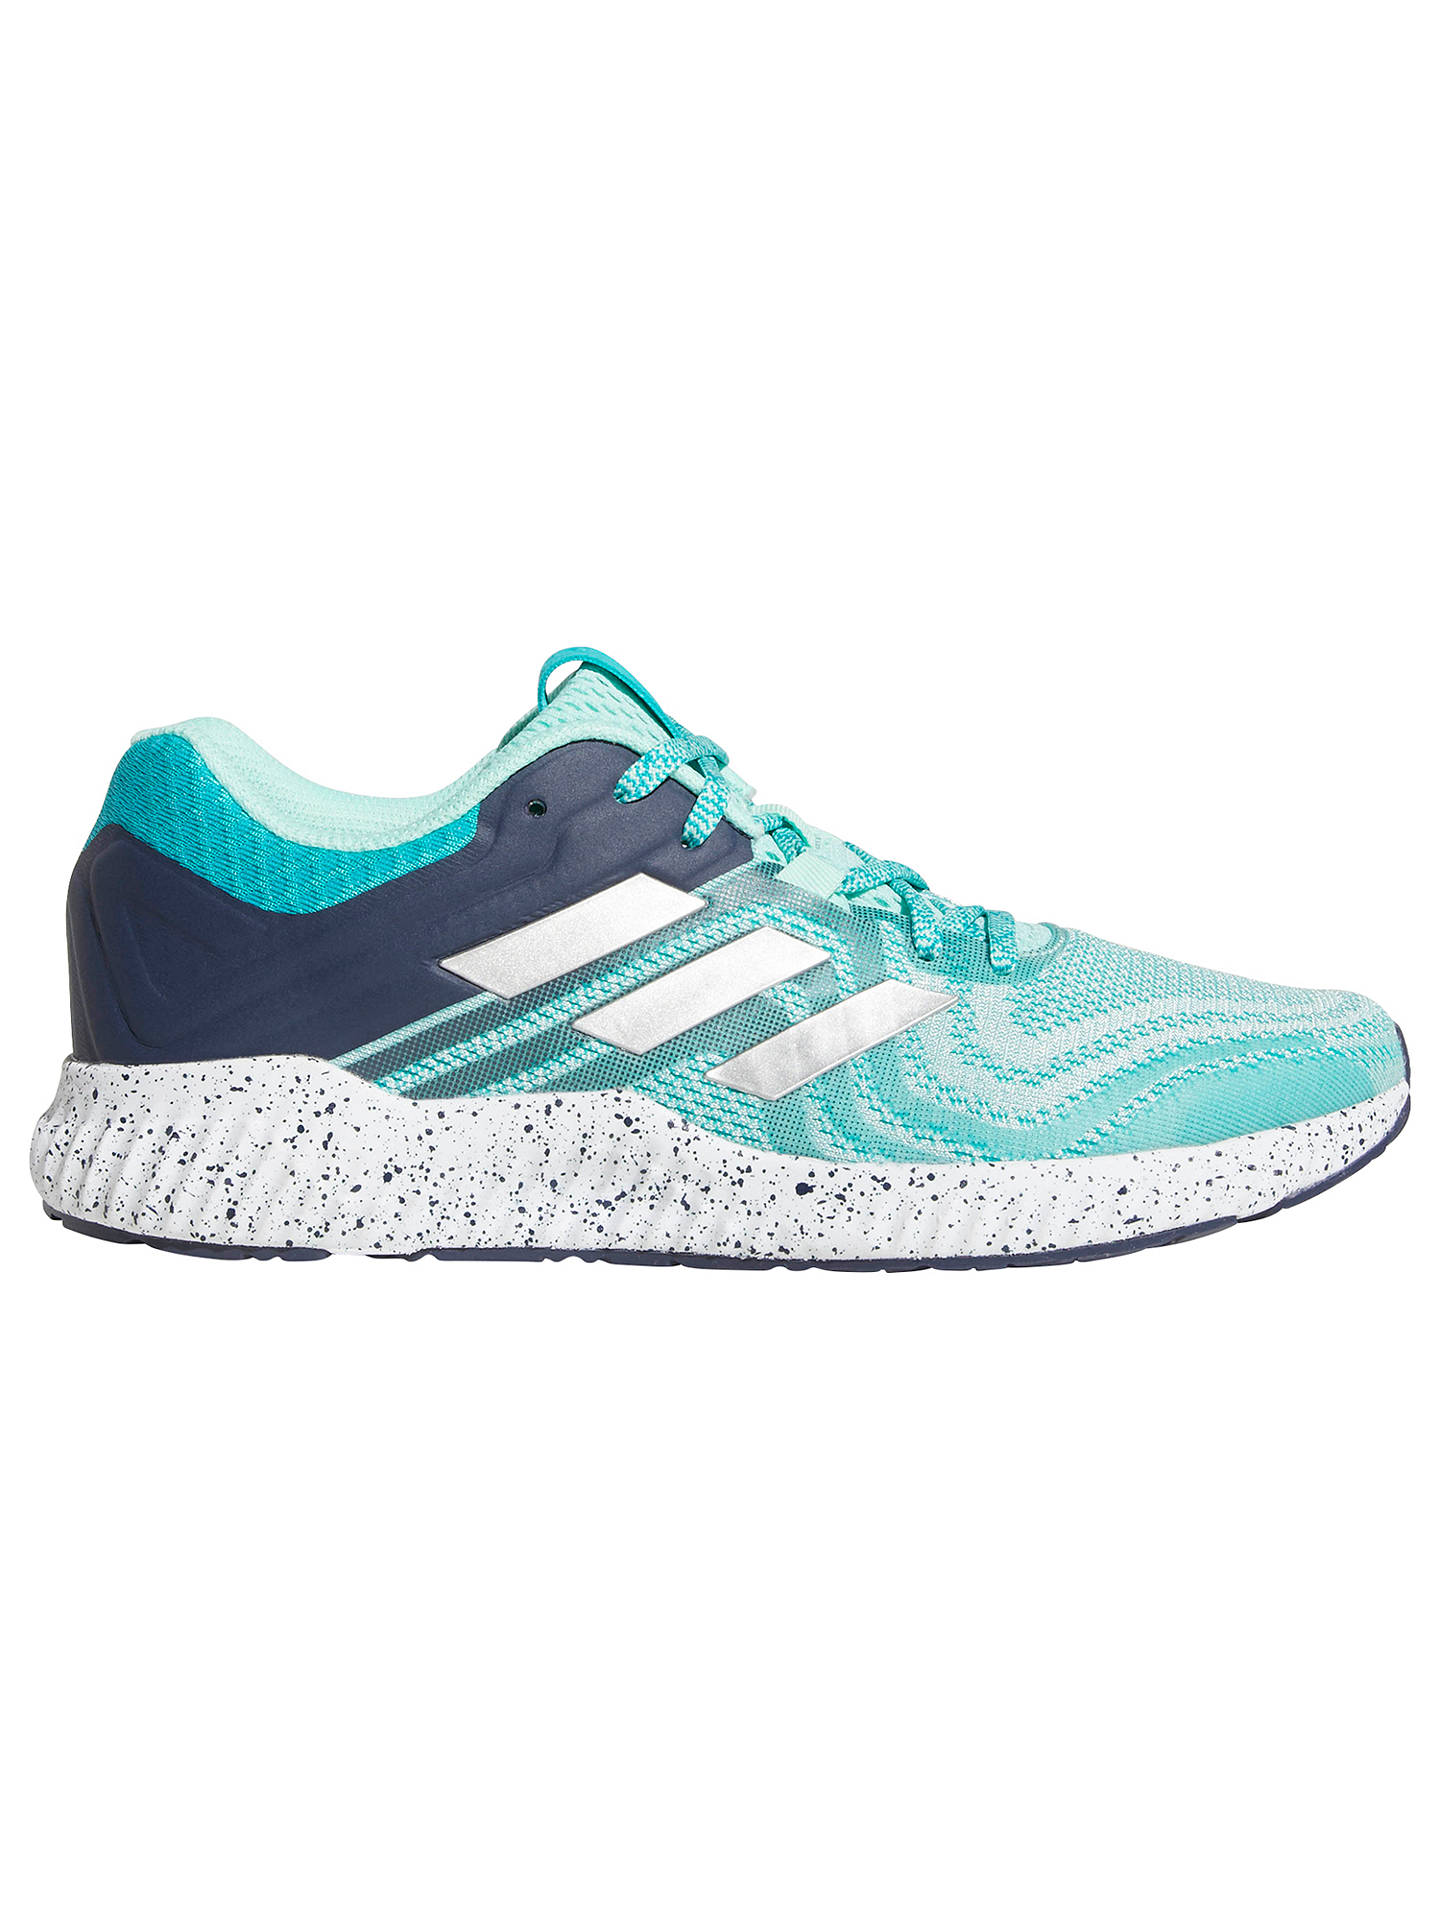 adidas Aerobounce ST Women's Running Shoes, AquaSilver